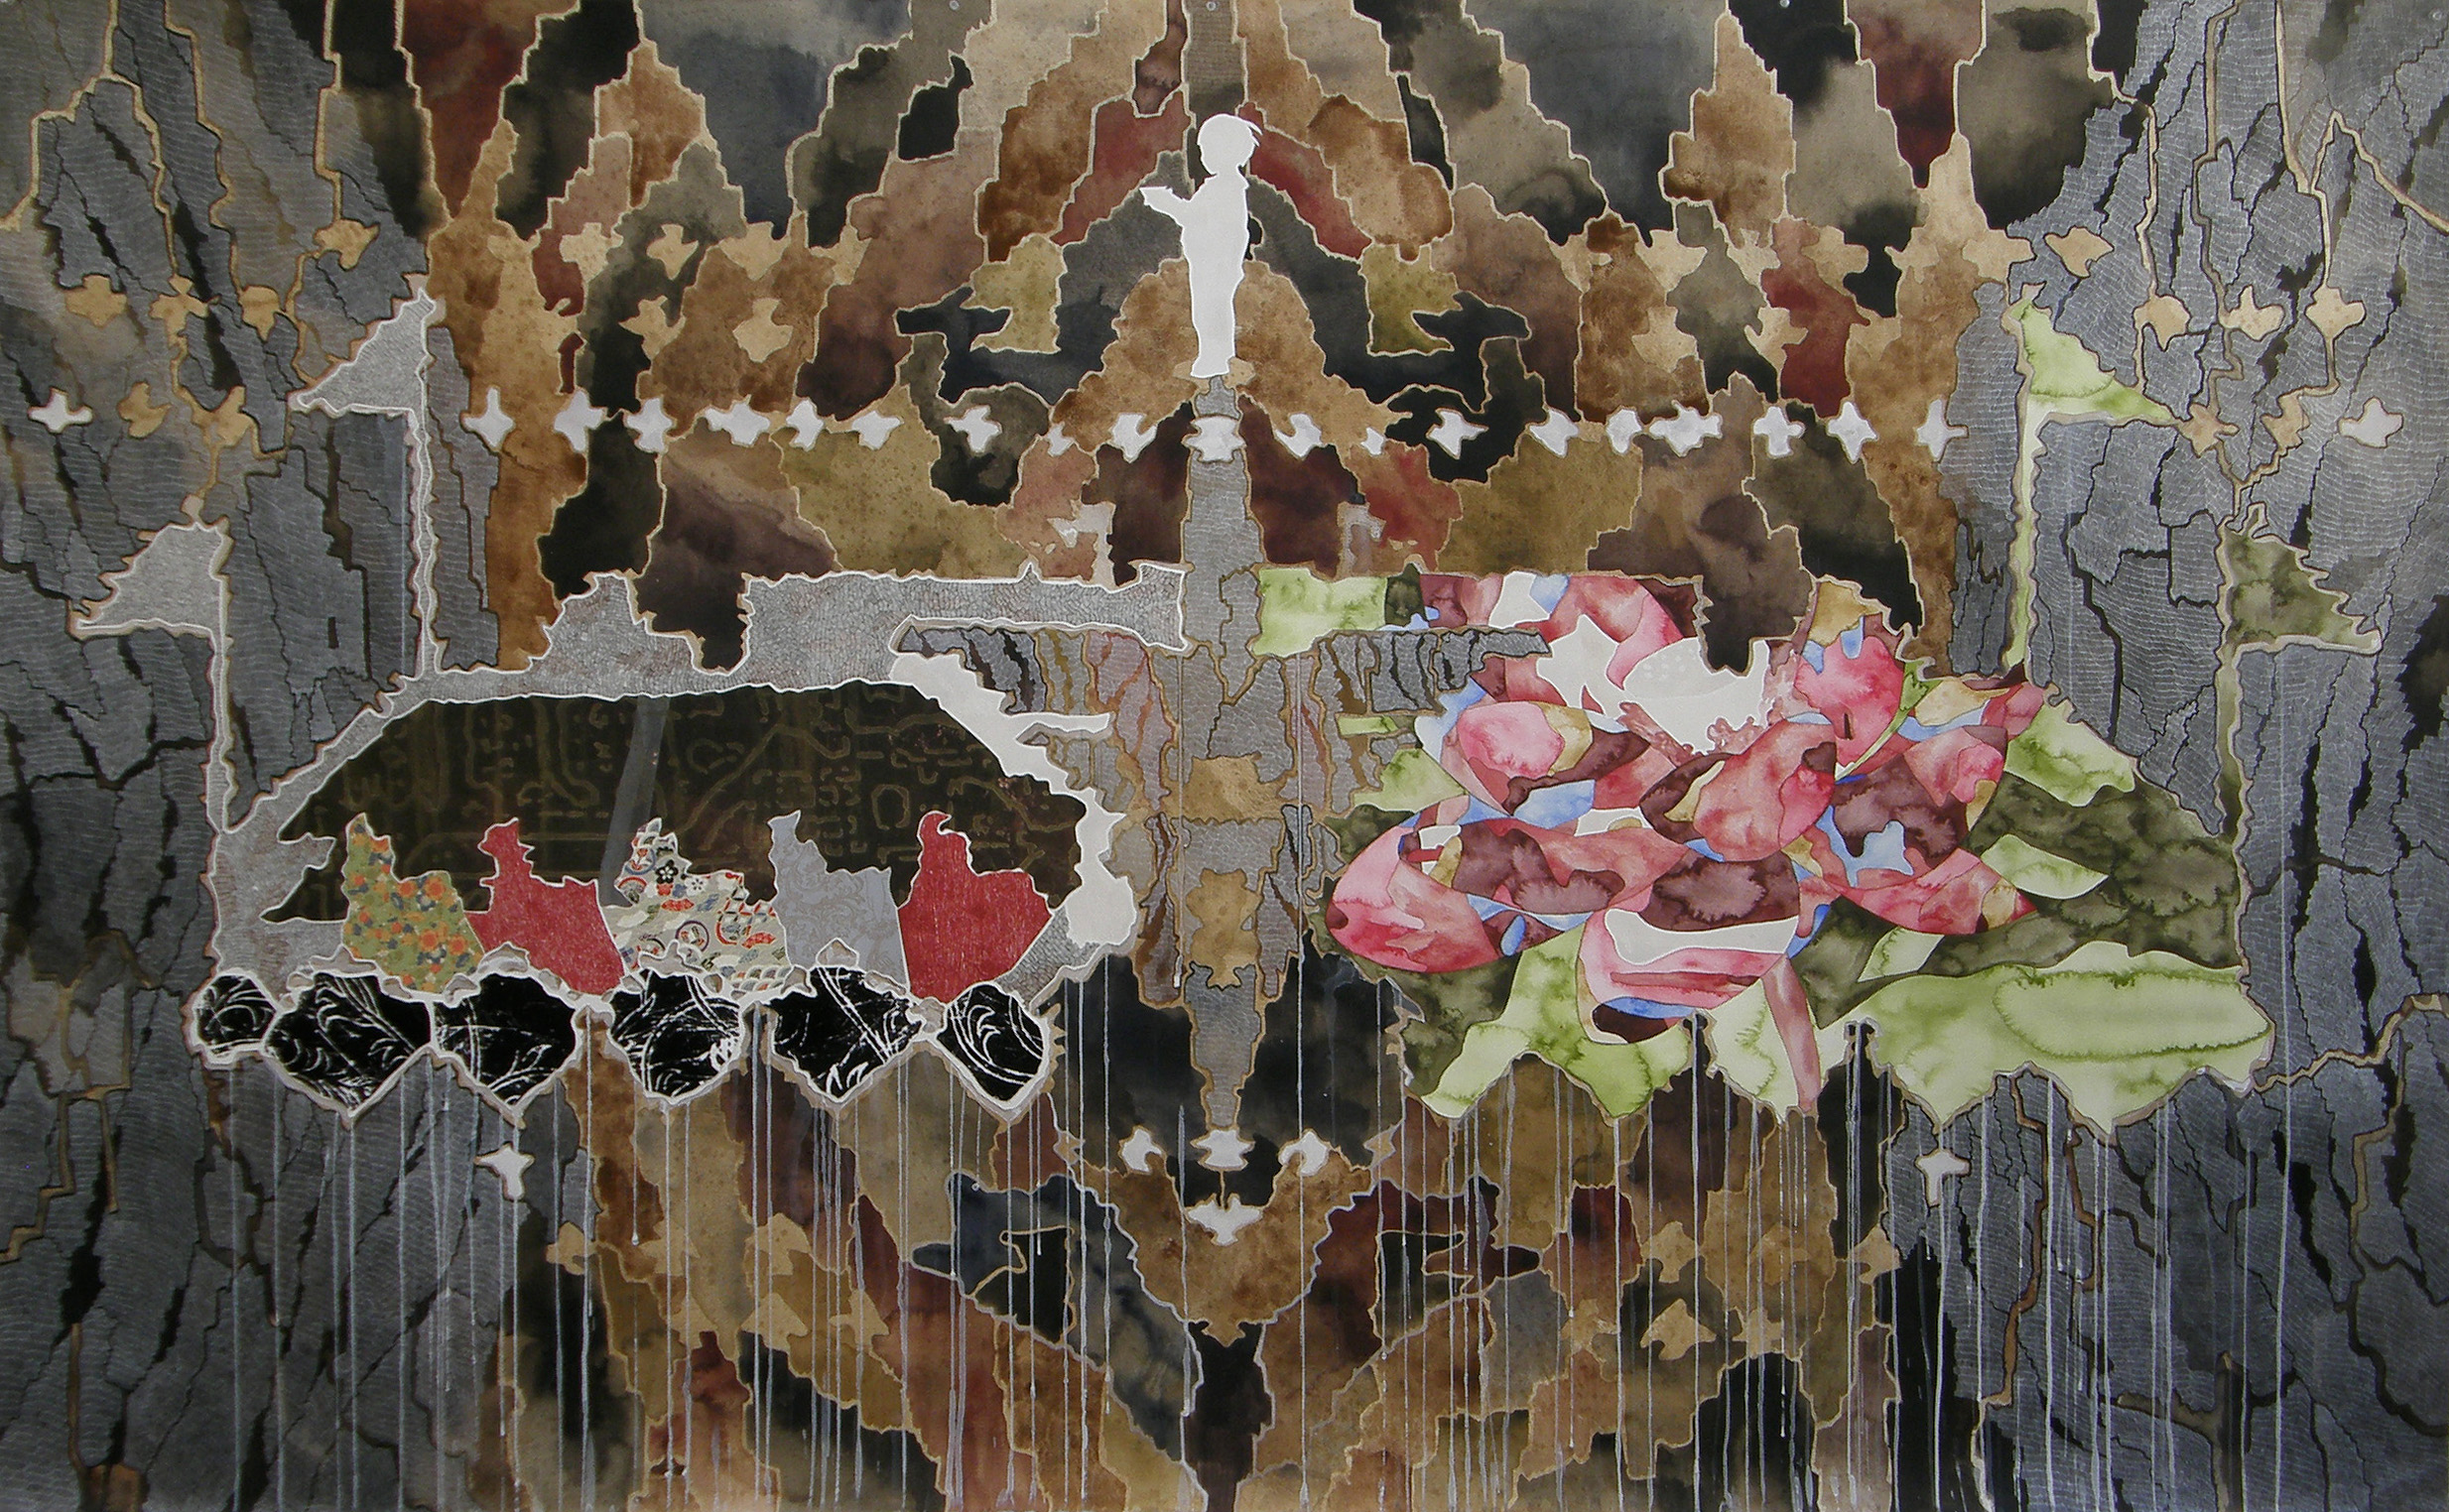 Belinda Fox. Monument 2008–2010. painting, drawing and collage on paper. Courtesy of the artist and Niagara Galleries.